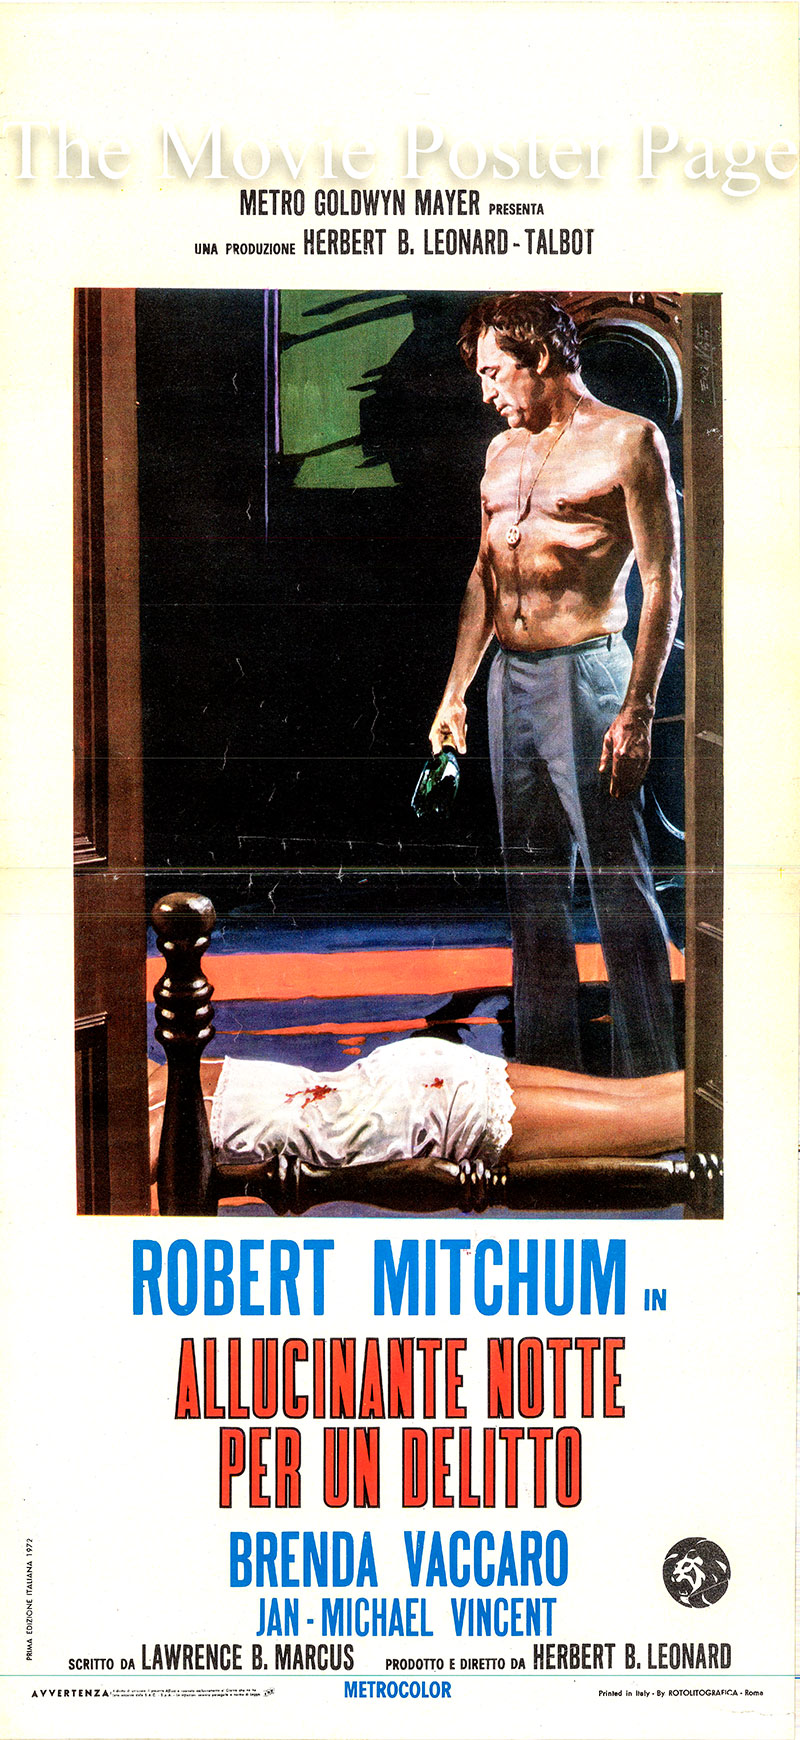 Pictured is an Italian locandina poster for the 1971 Herbert B. Leonard film Going Home starring Robert Mitchum as Harry K. Graham.